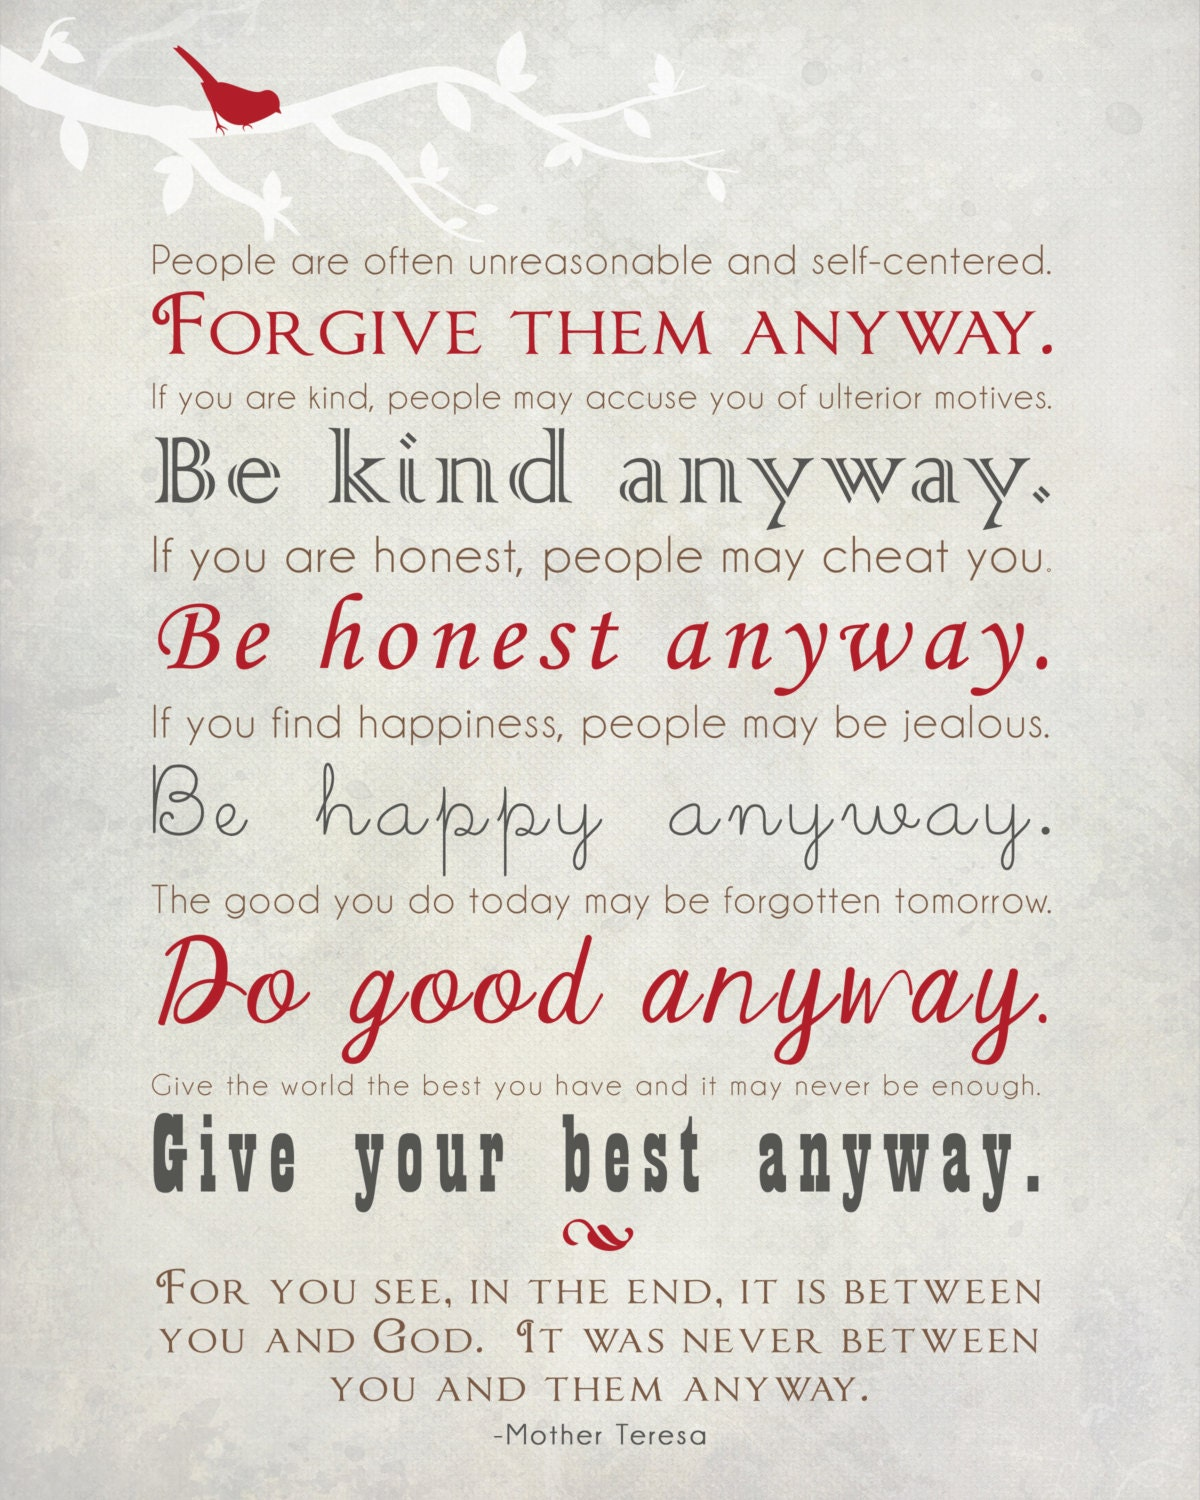 Mother Teresa Quotes Love Them Anyway Mother Teresa Quote Wall Art Print  Forgive Them Anyway  Be Kind